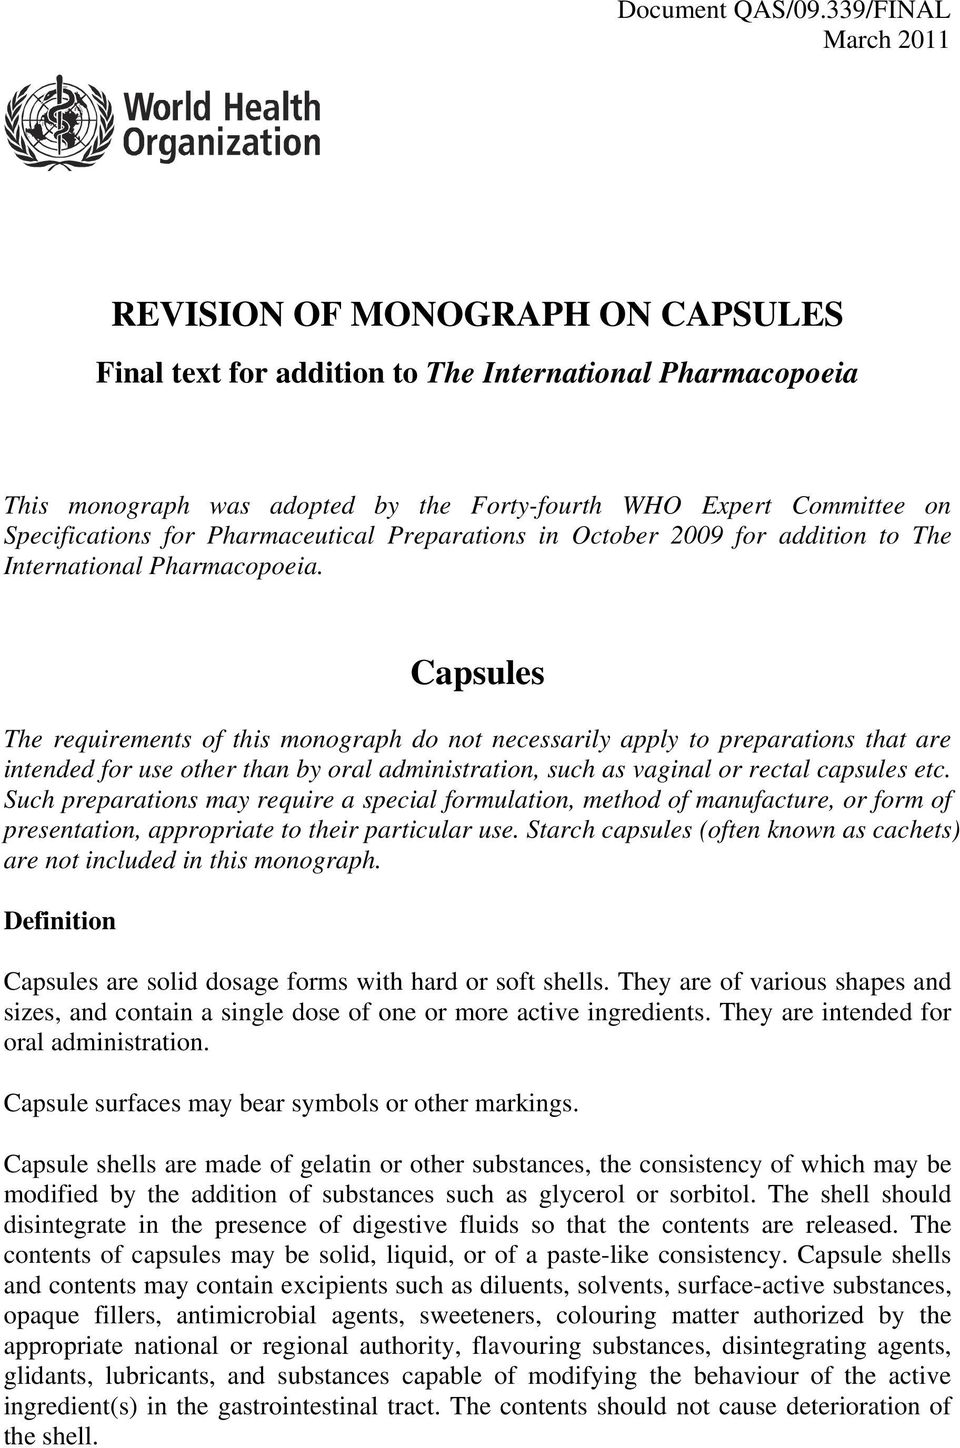 Capsules The requirements of this monograph do not necessarily apply to preparations that are intended for use other than by oral administration, such as vaginal or rectal capsules etc.